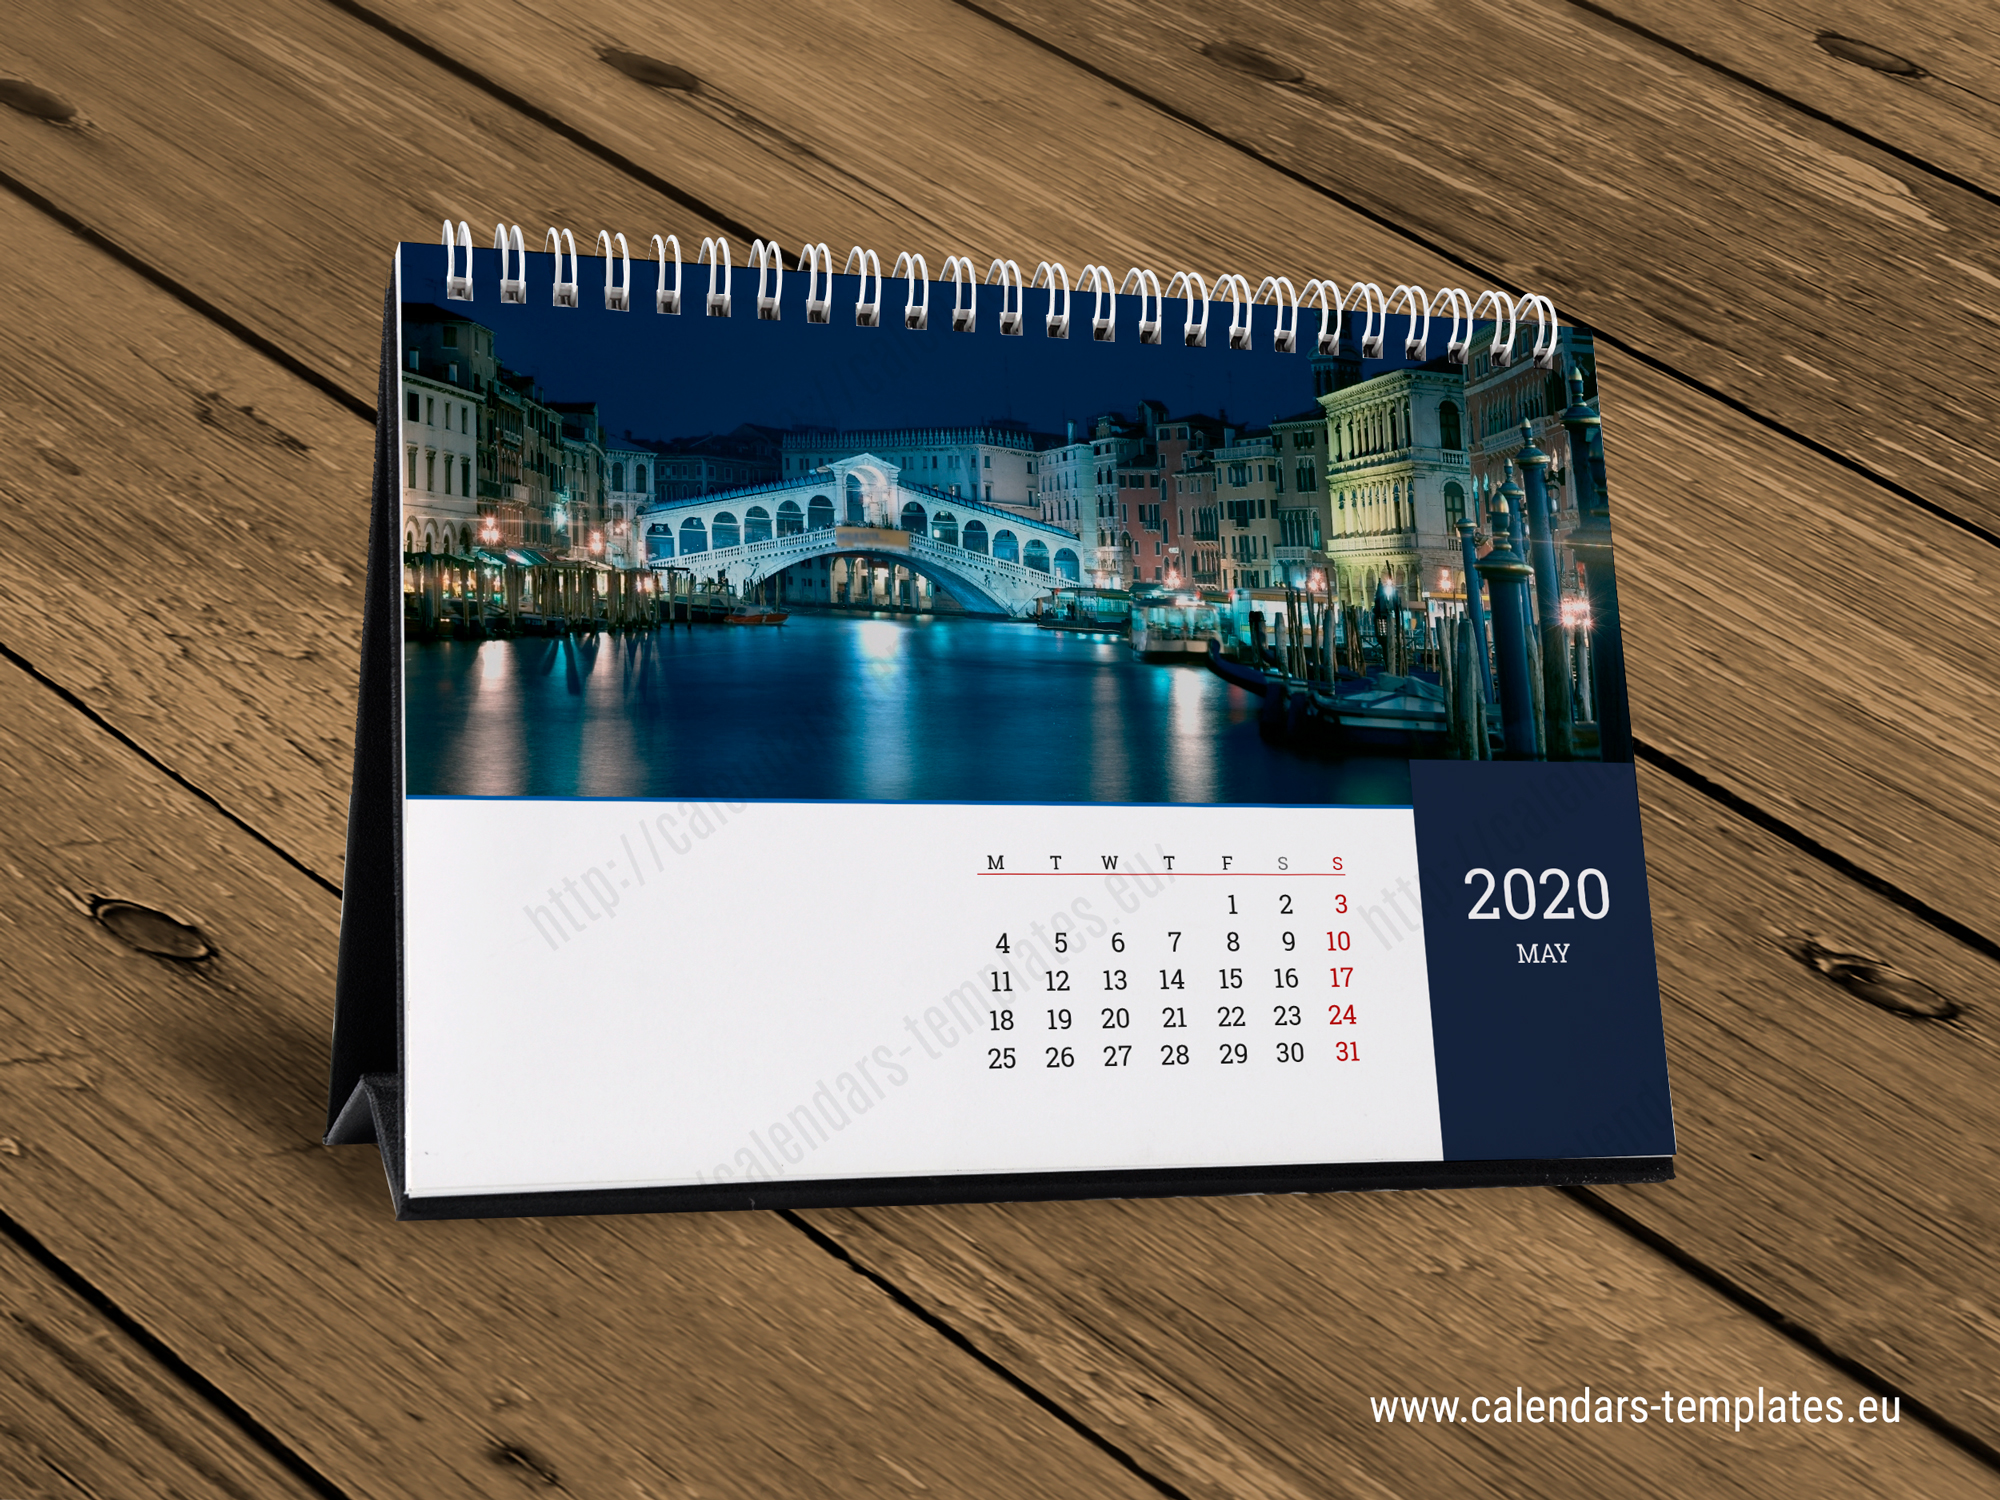 2020 Desk Monthly Calendar KB10-W6